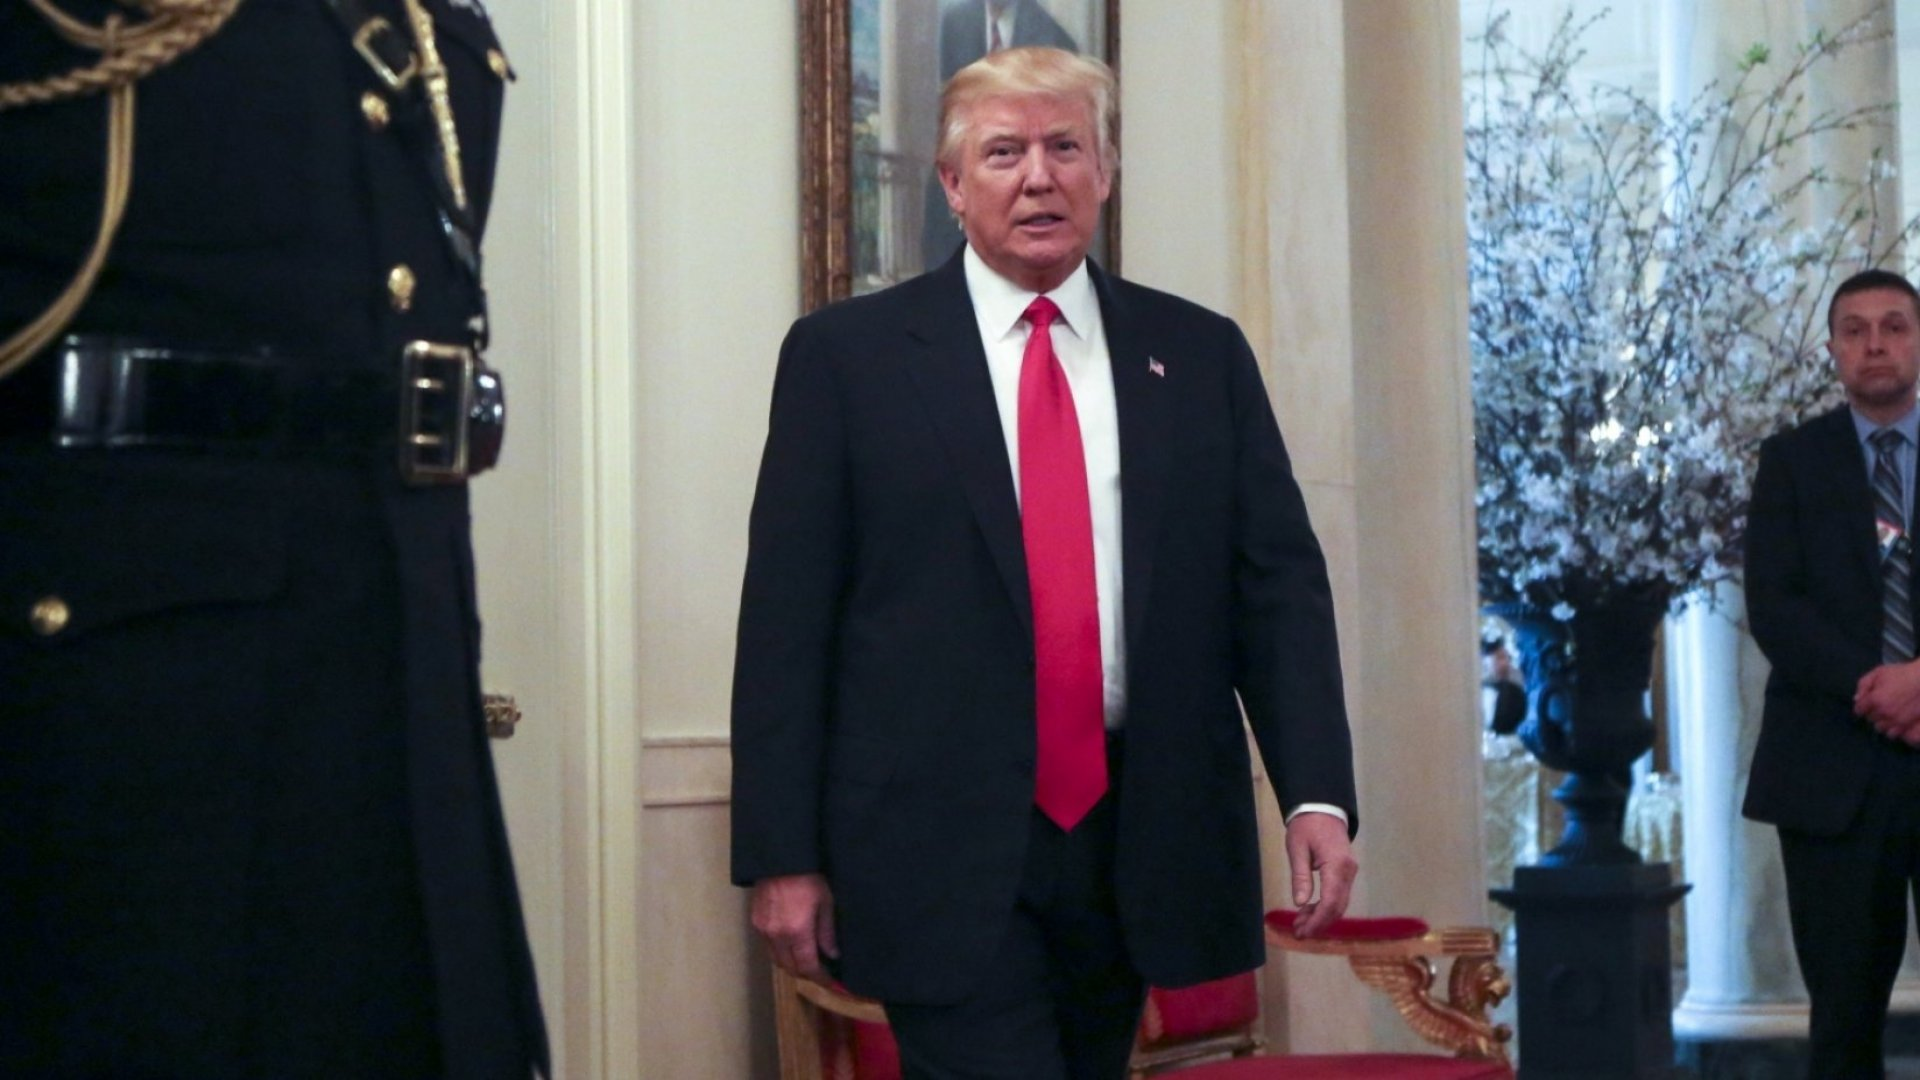 President Trump attends the National Governors Association.